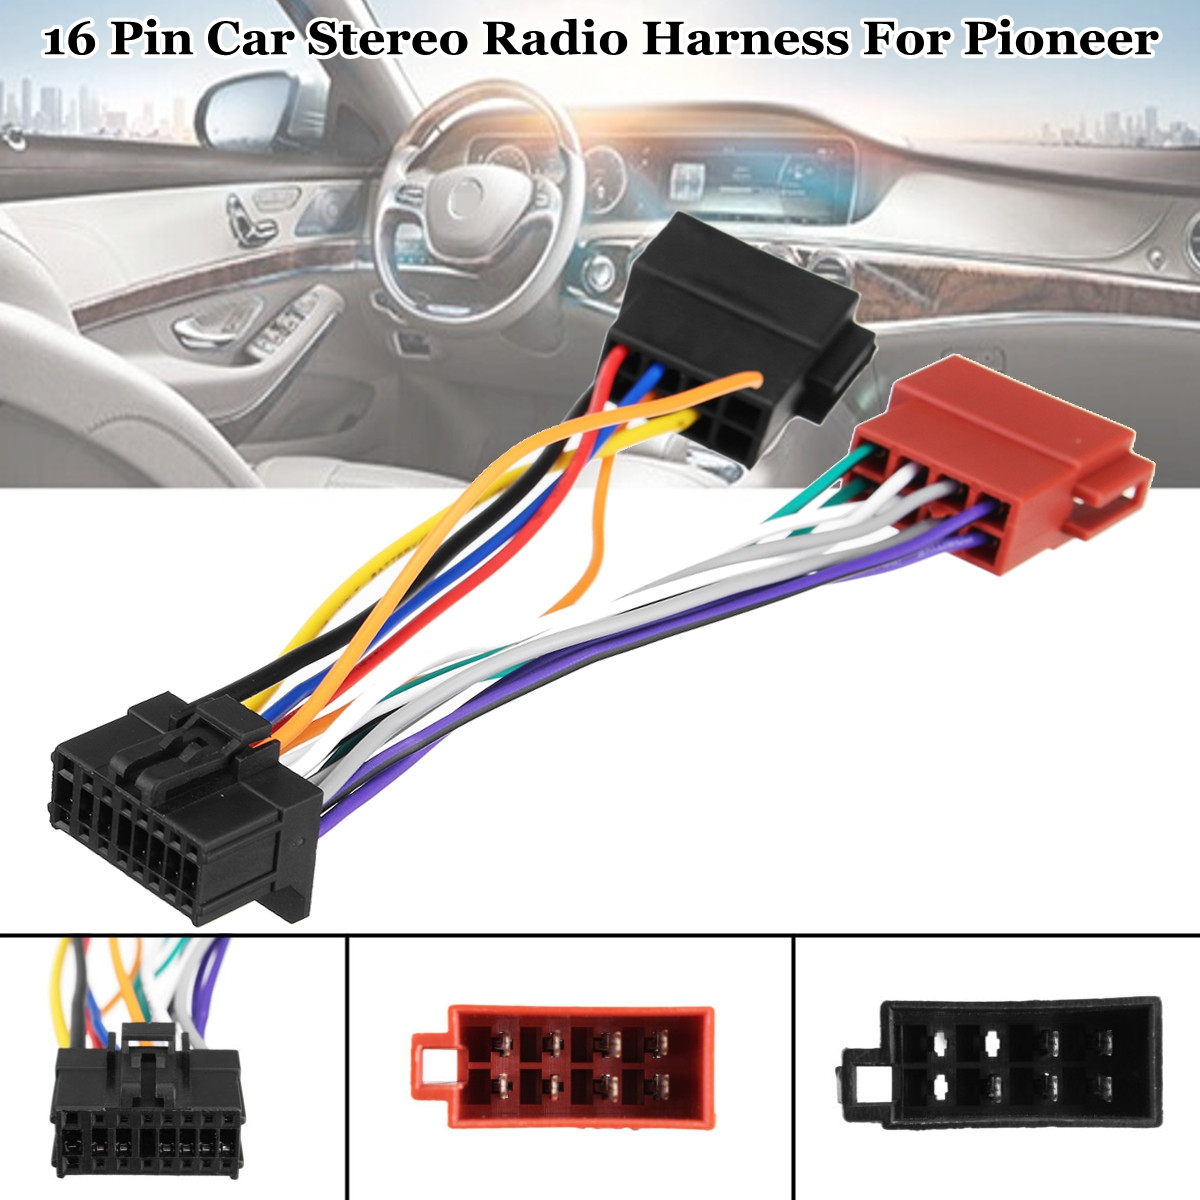 Car Stereo Radio ISO Wiring Harness Connector 16 Pin PI100 For Pioneer 2003  on-in Cables, Adapters & Sockets from Automobiles & Motorcycles on ...